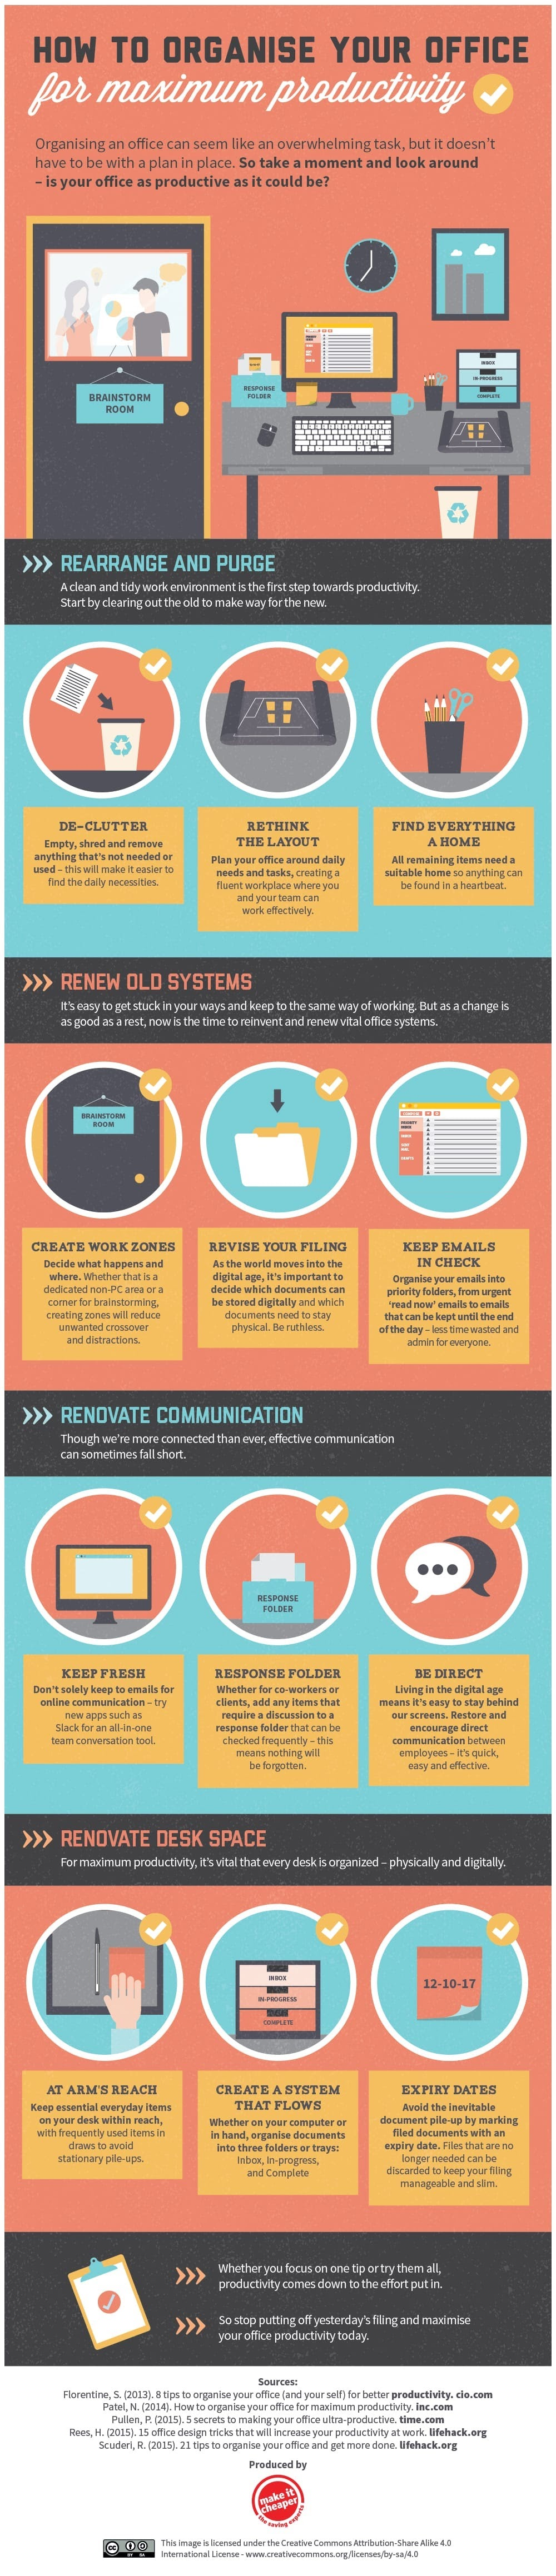 How to organize your office in order to increase productivity #infographic